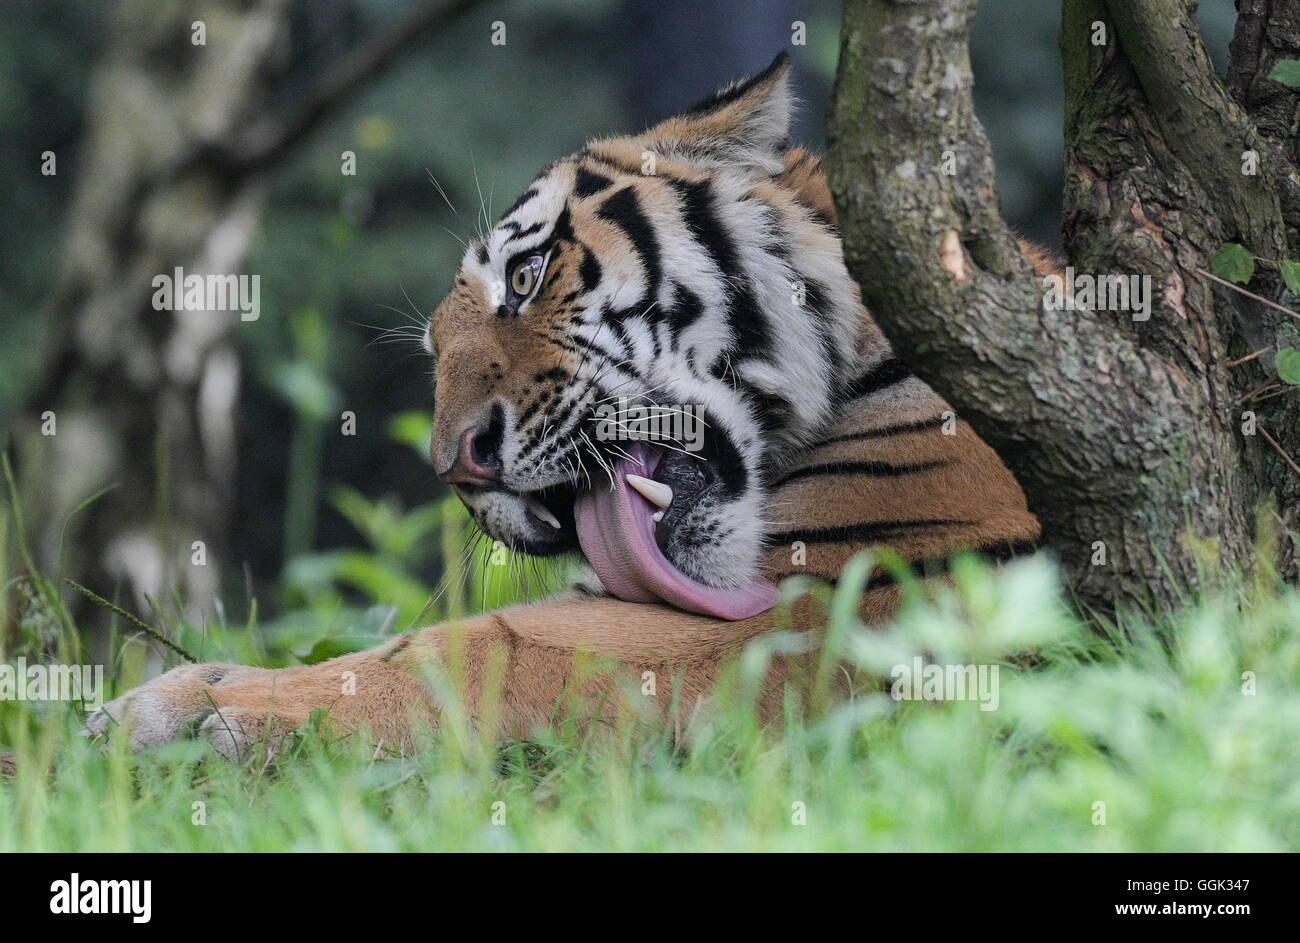 Tiger shows his tongue at Hagenbeck's zoo in Hamburg, Germany, August 4, 2016. - Stock Image